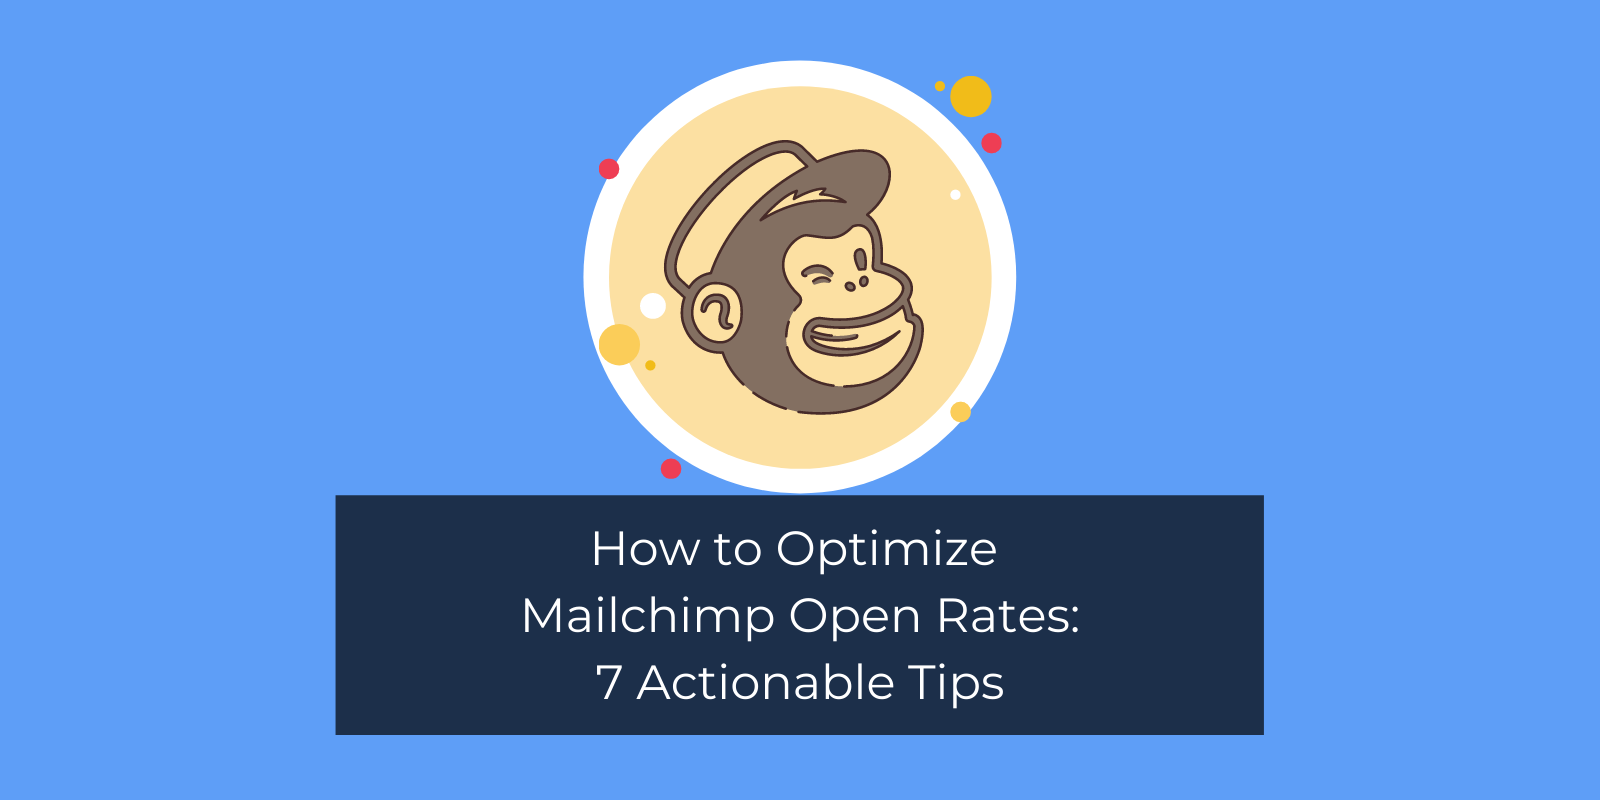 How to Optimize Mailchimp Open Rates: 7 Actionable Tips